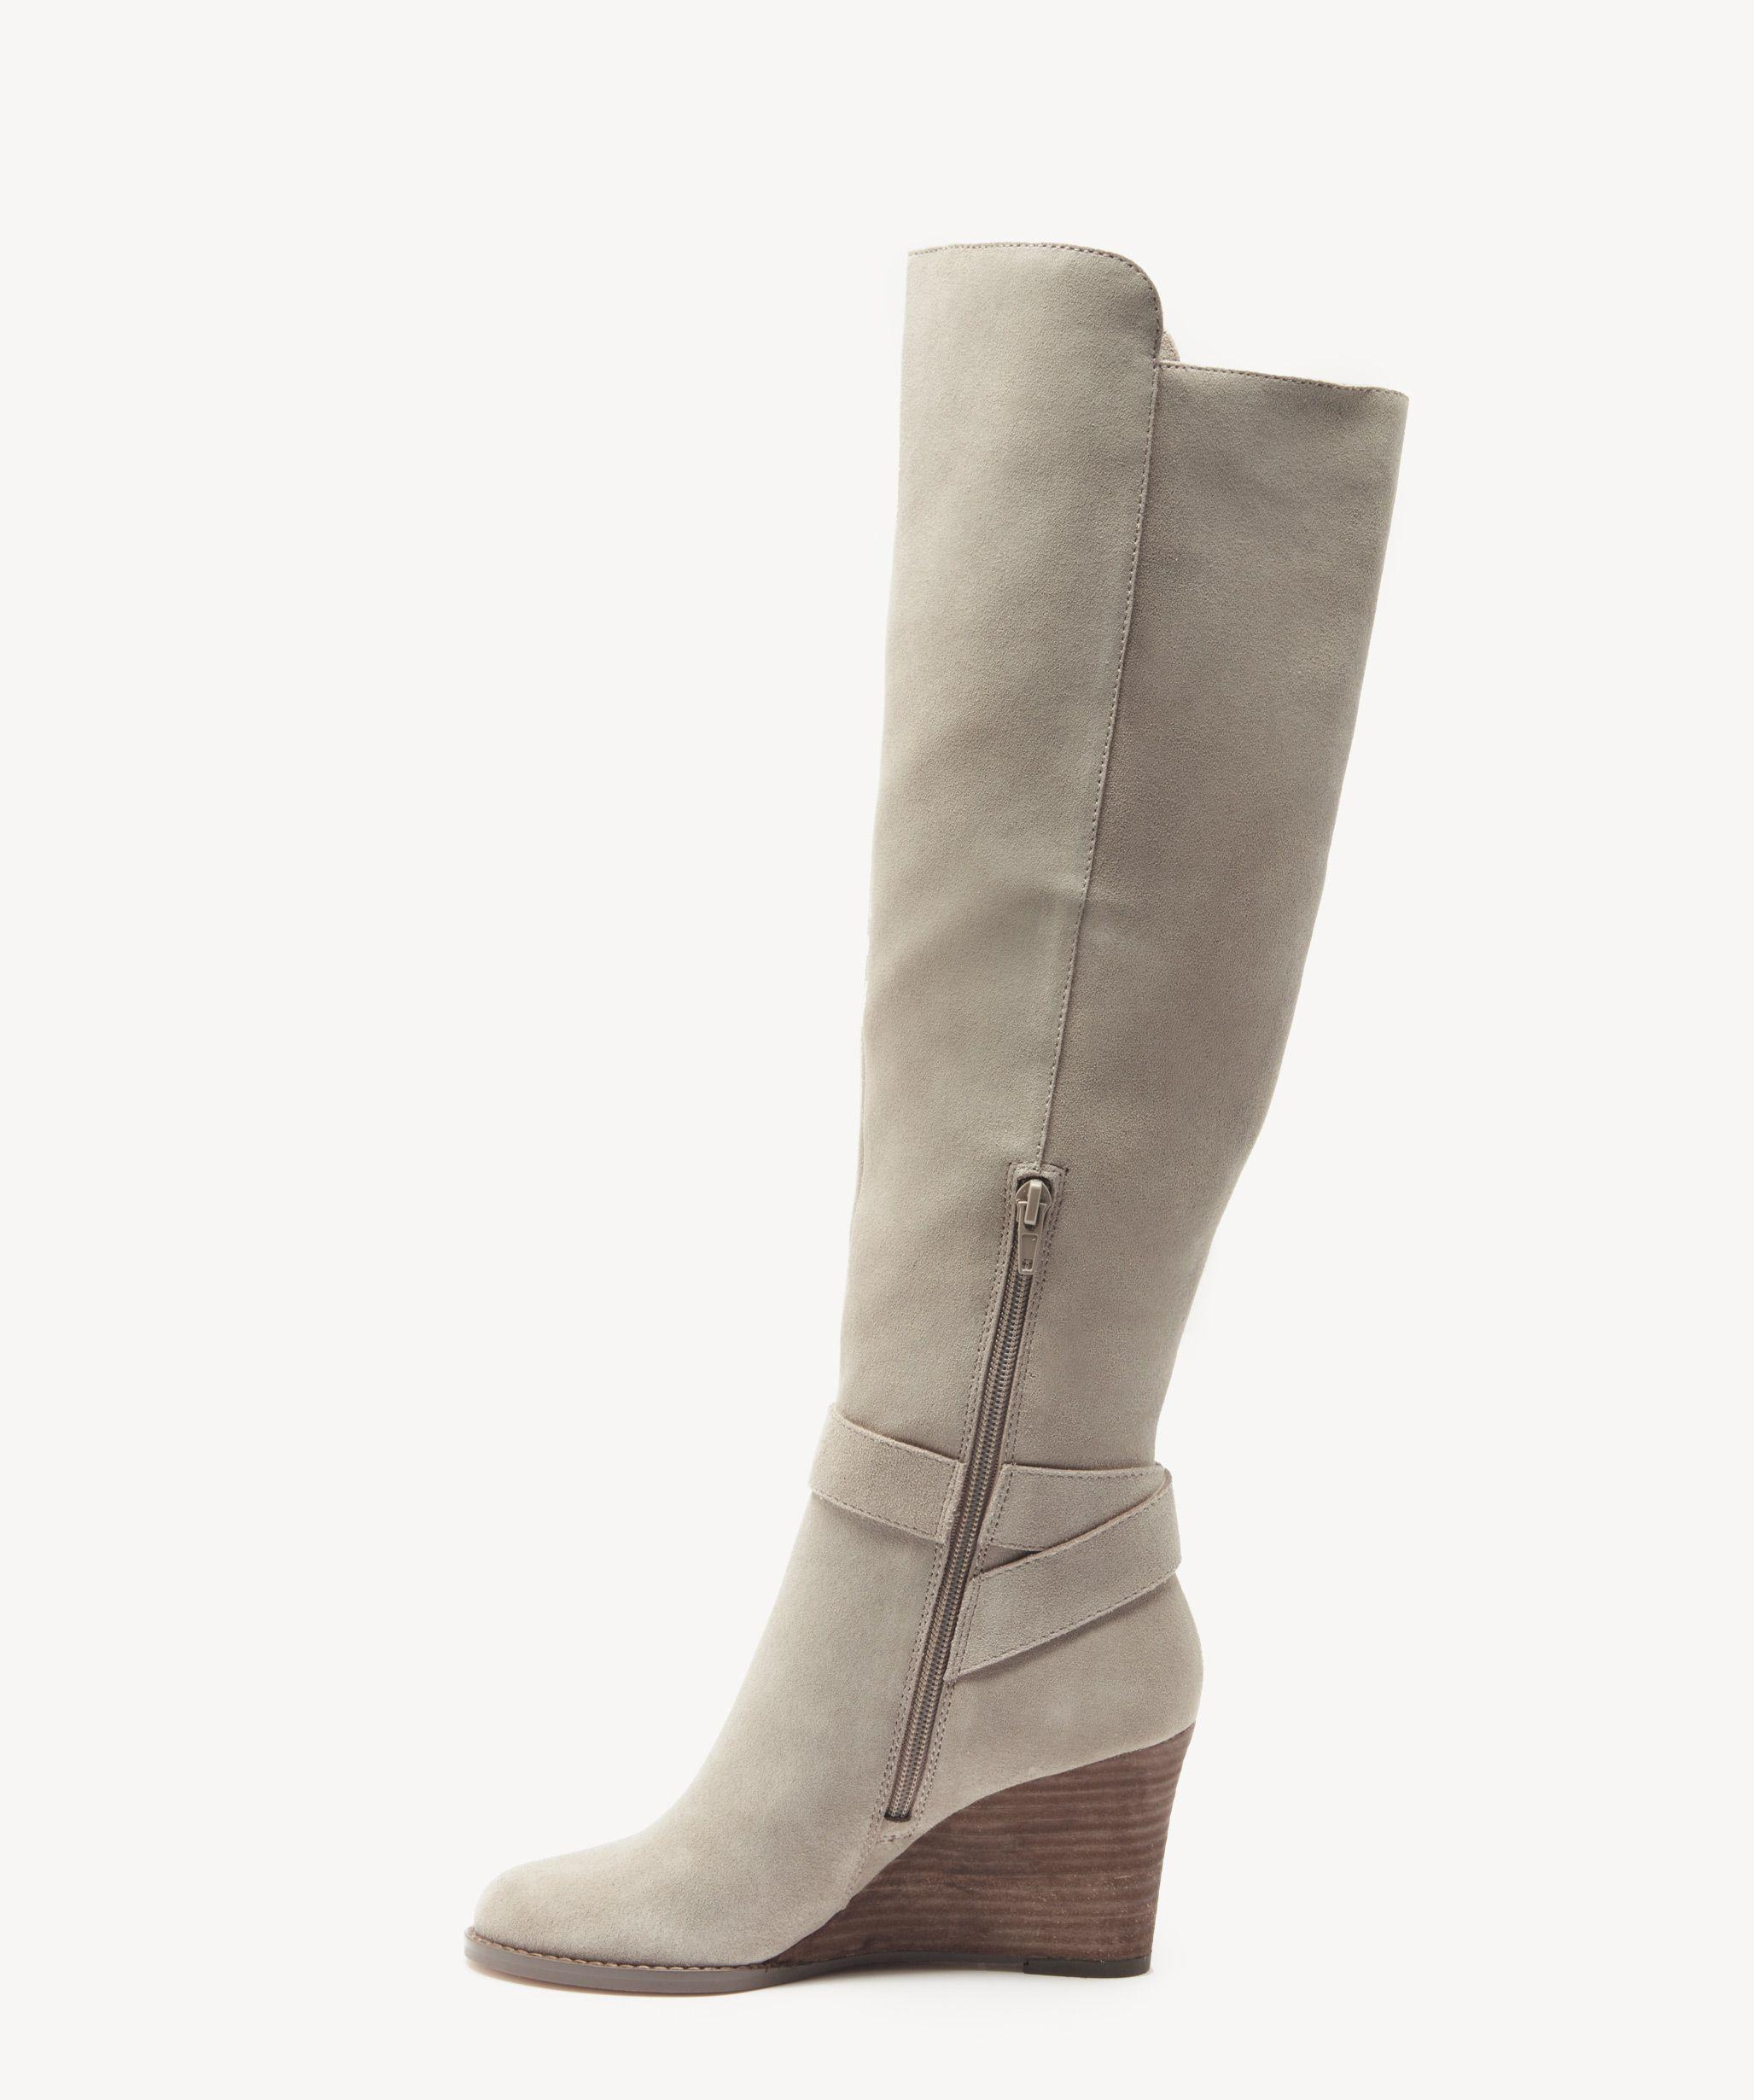 5183ce72d7c Lyst - Sole Society Paloma Wedge Boot